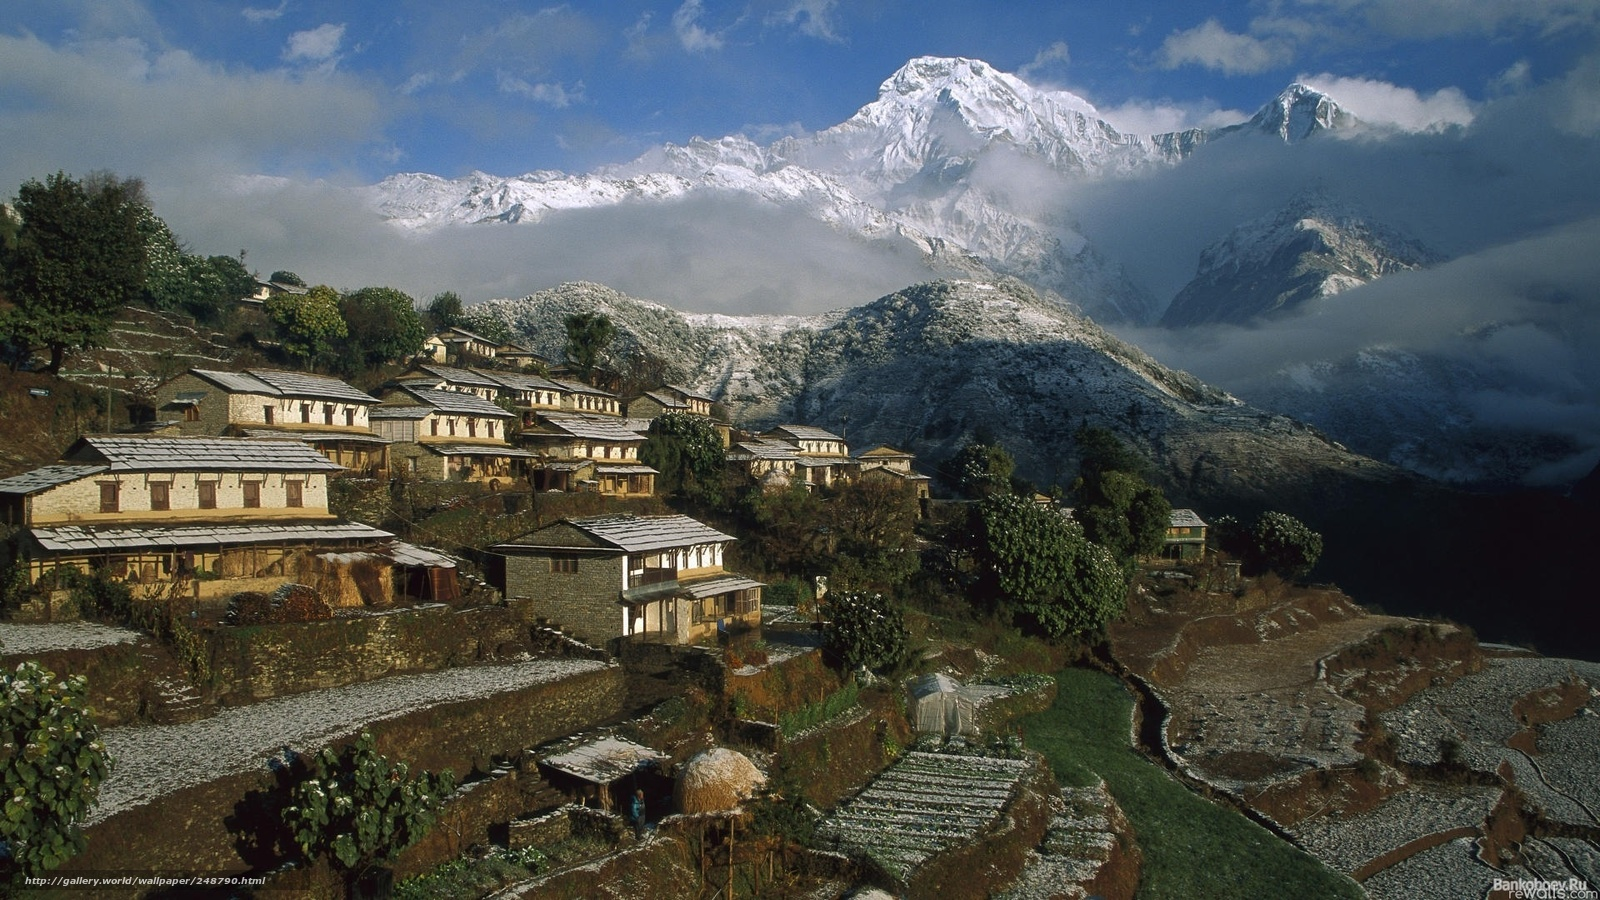 download wallpaper anapurna mountain nepal asia free